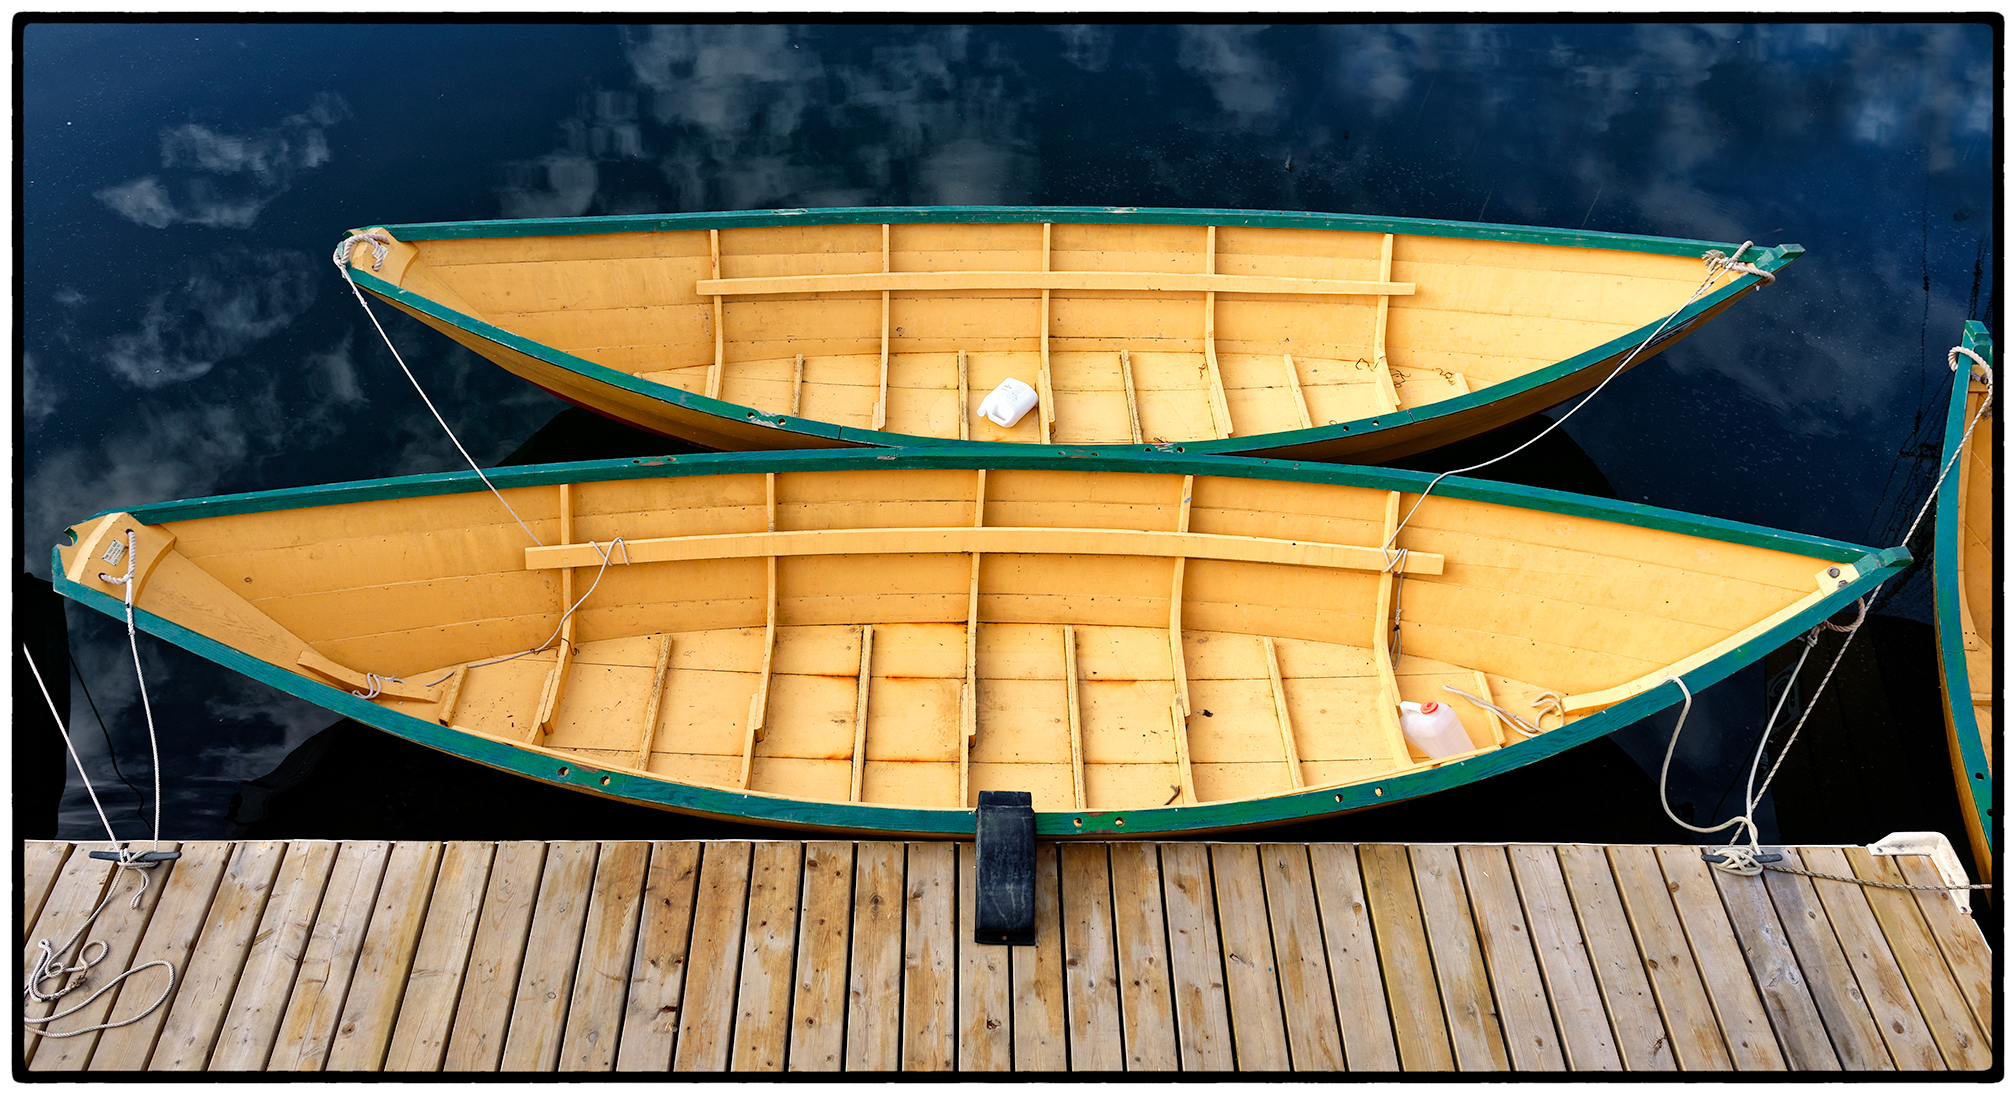 Dories, Lunenburg